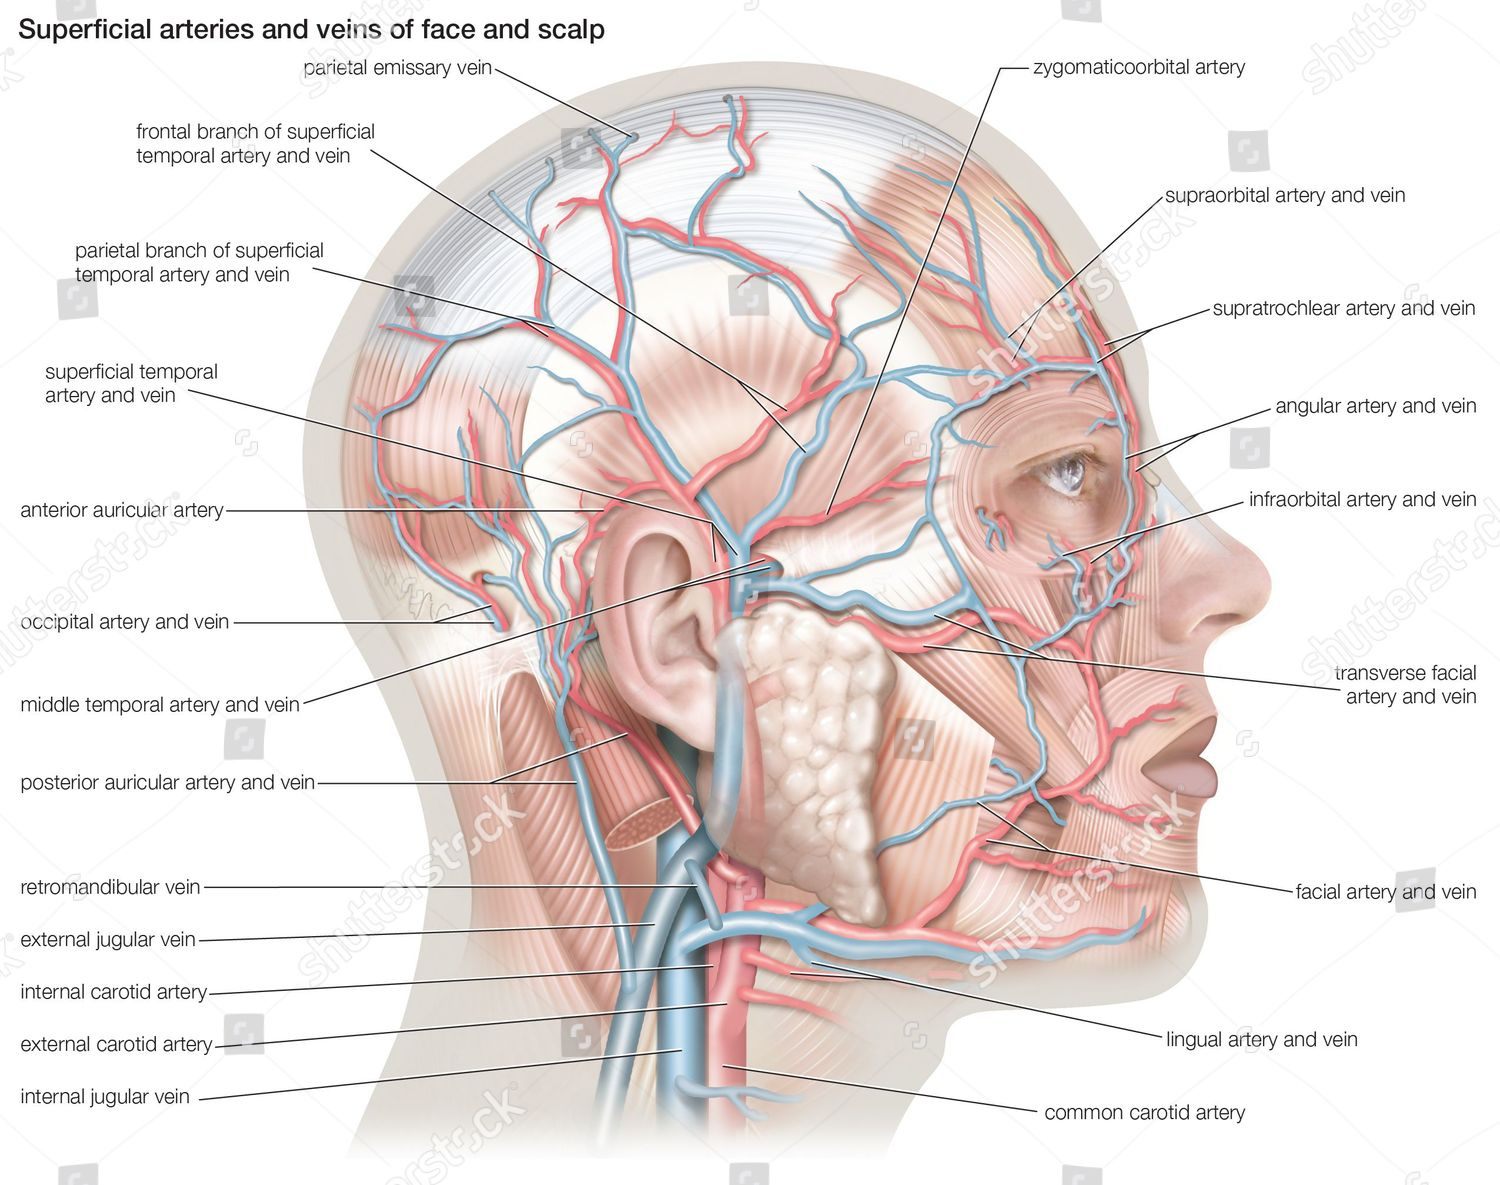 Arteries And Veins Diagram Superficial Arteries Veins Face Scalp Editorial Stock Photo Stock